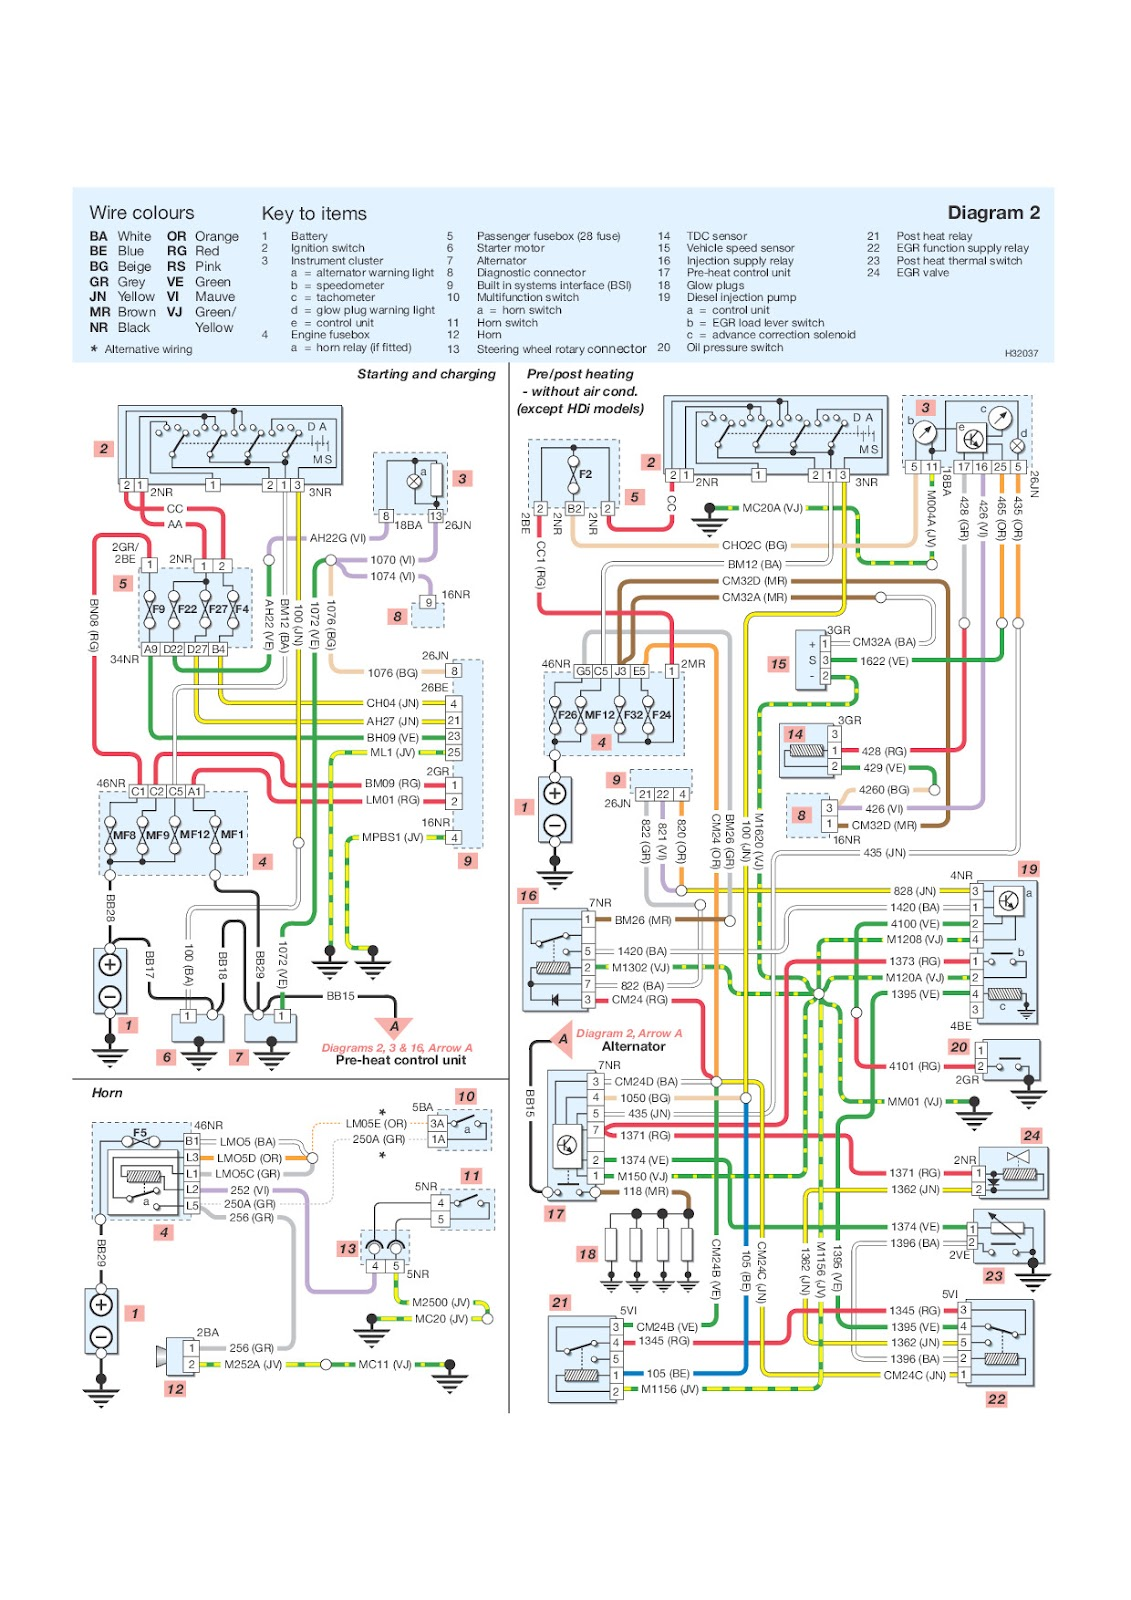 your wiring diagrams source peugeot 206 starting charging horn rh allwiringdiagrams blogspot com peugeot 206 radio wiring harness peugeot 206 audio wiring diagram pdf